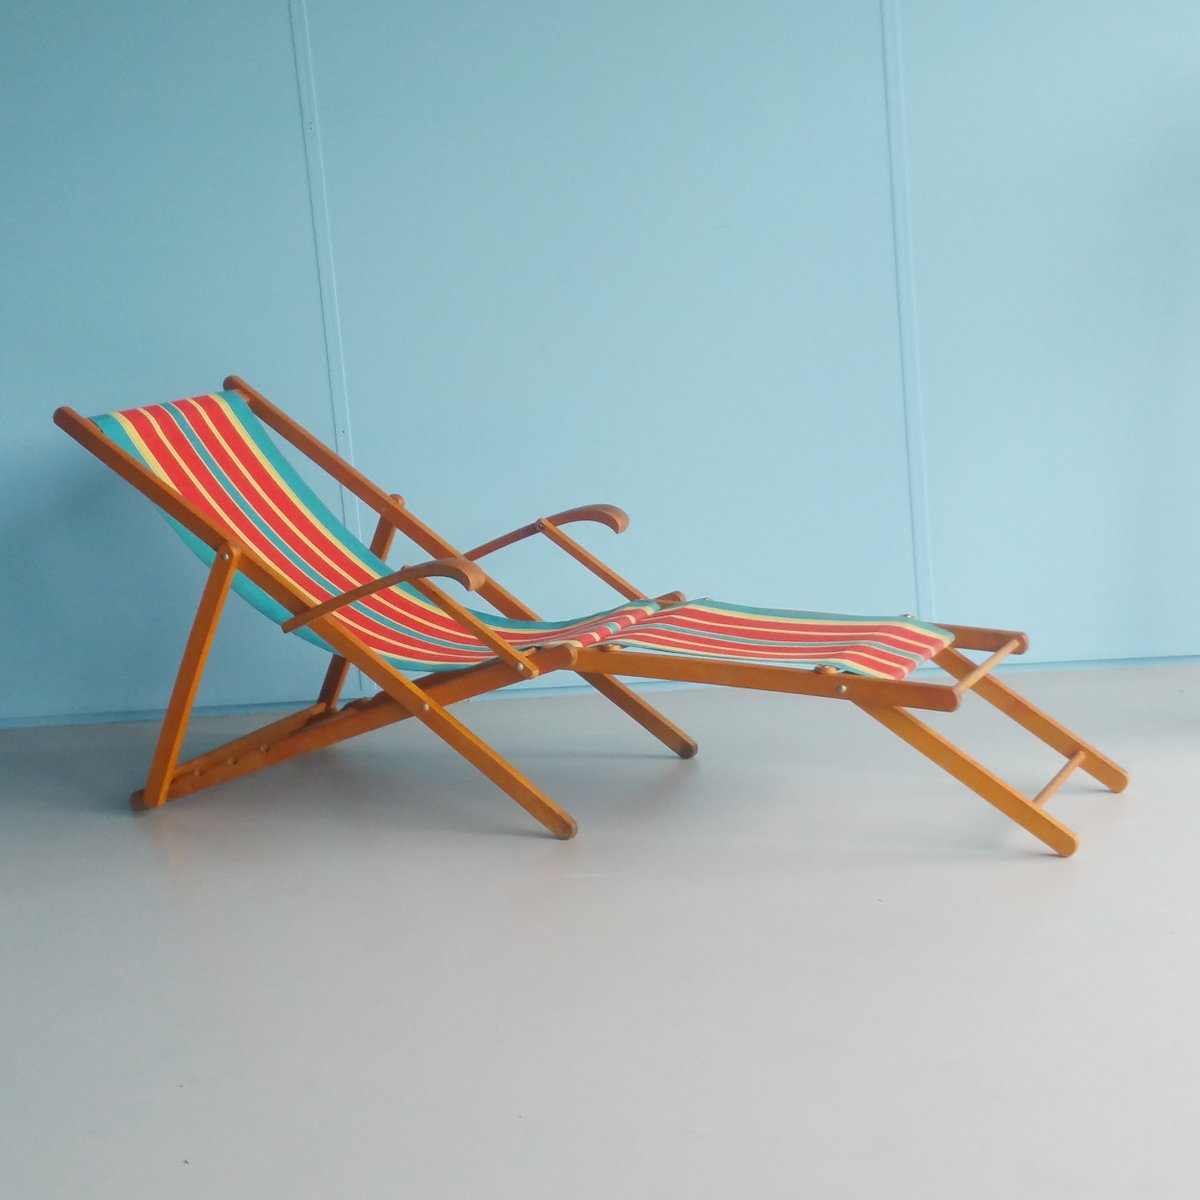 Vintage Folding Wooden Beach Chair 1960s For Sale At Pamono